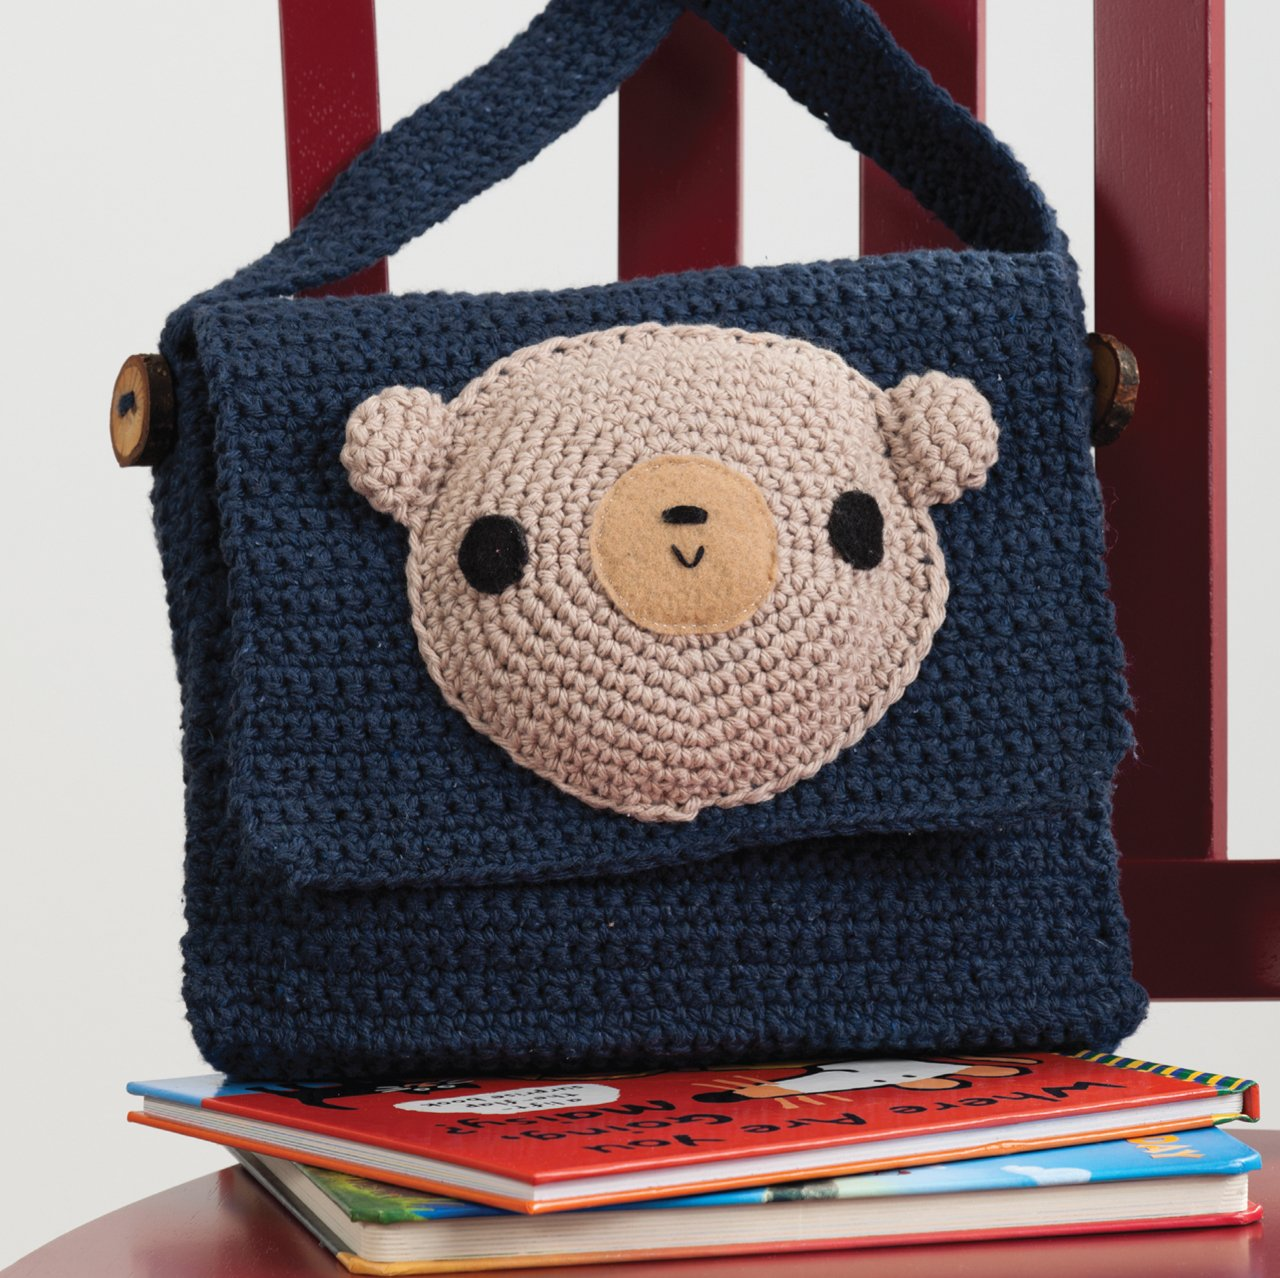 Amigurumi on the go 30 patterns for crocheting kids bags amigurumi on the go 30 patterns for crocheting kids bags backpacks and more ana paula rimoli 9781604682137 amazon books bankloansurffo Choice Image